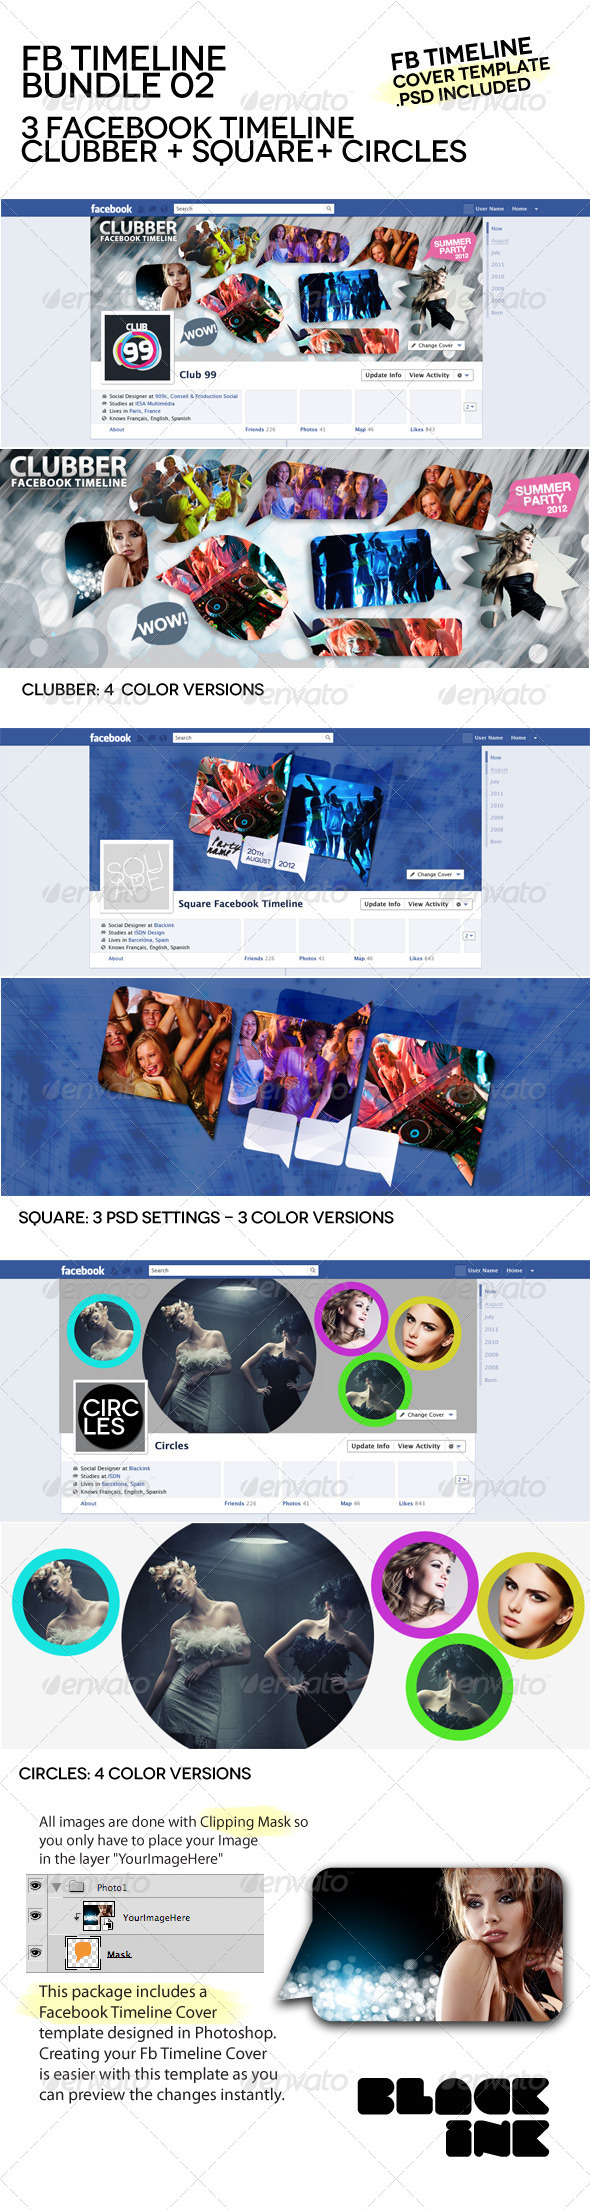 Facebook Timeline Bundle 02 - Facebook Timeline Covers Social Media